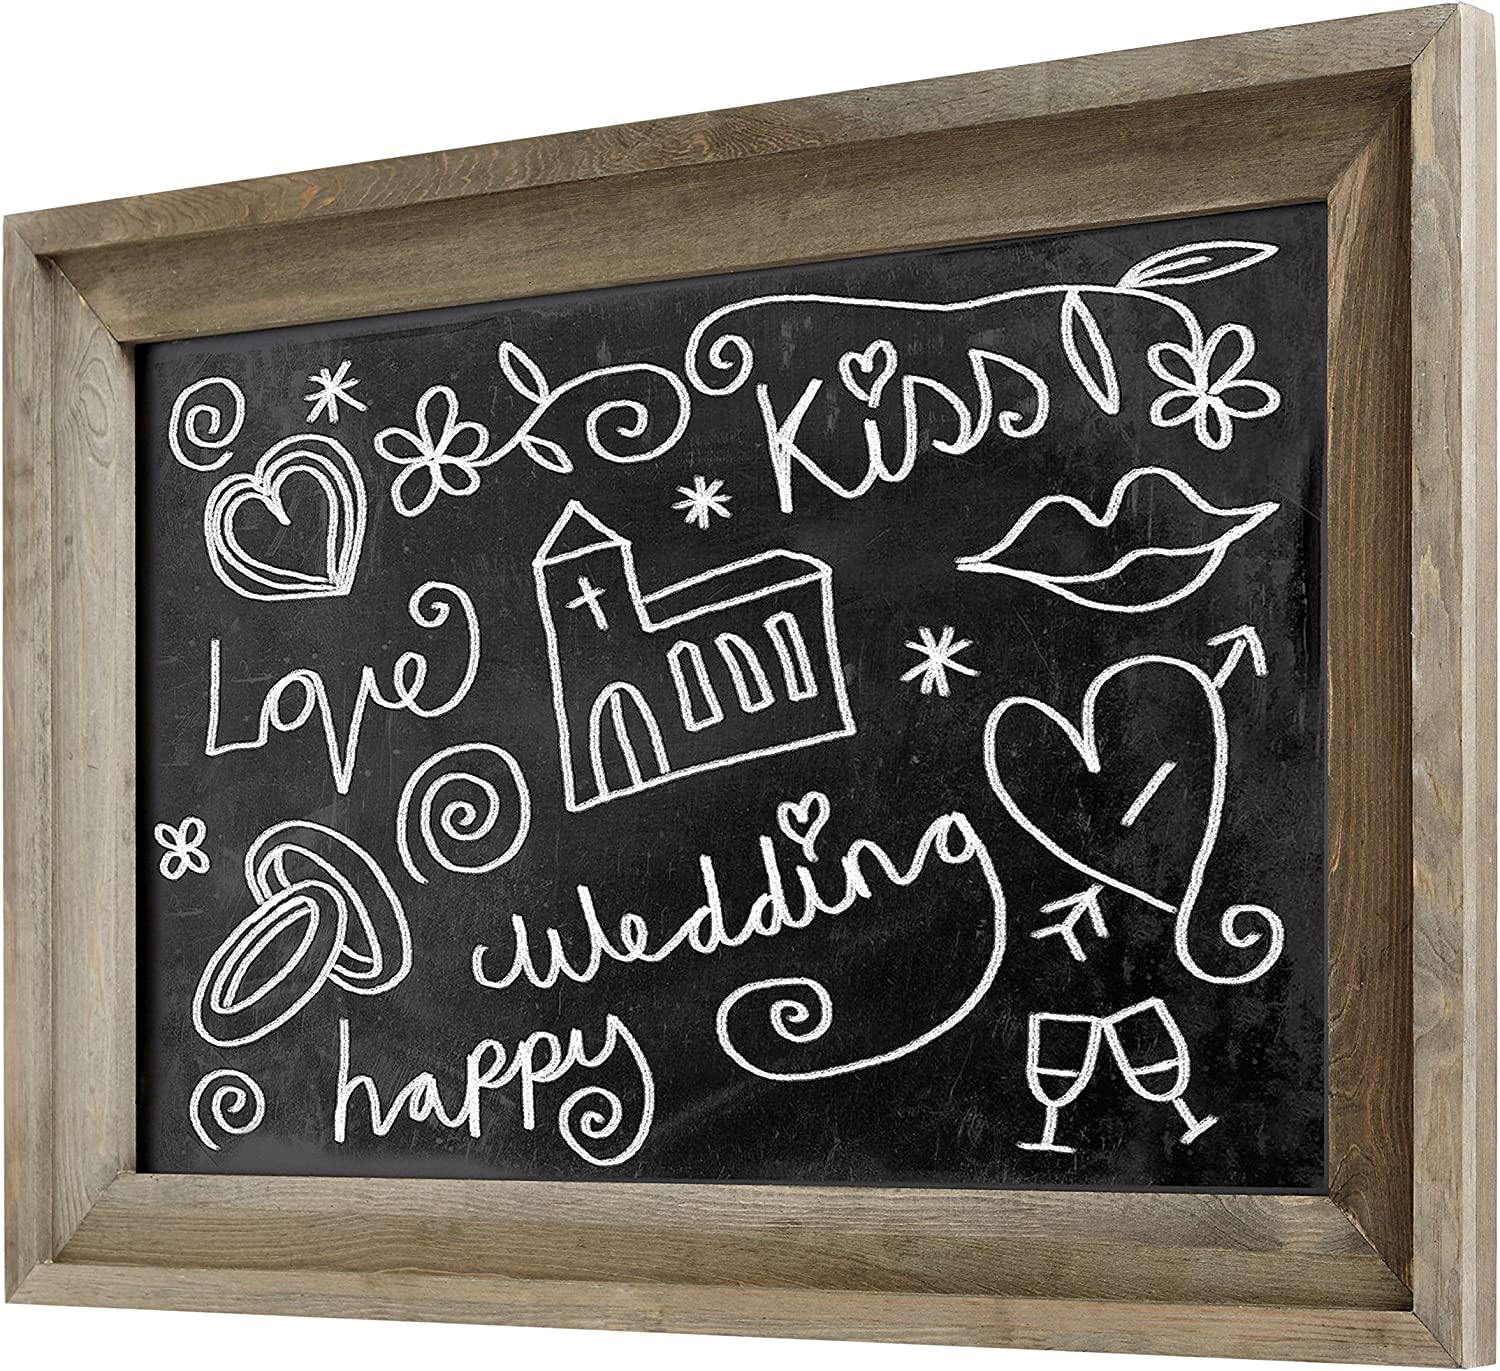 MyGift Rustic Wall Mounted Ash Gray Wood Framed Erasable Chalkboard, Family Message Boards - 36 x 24